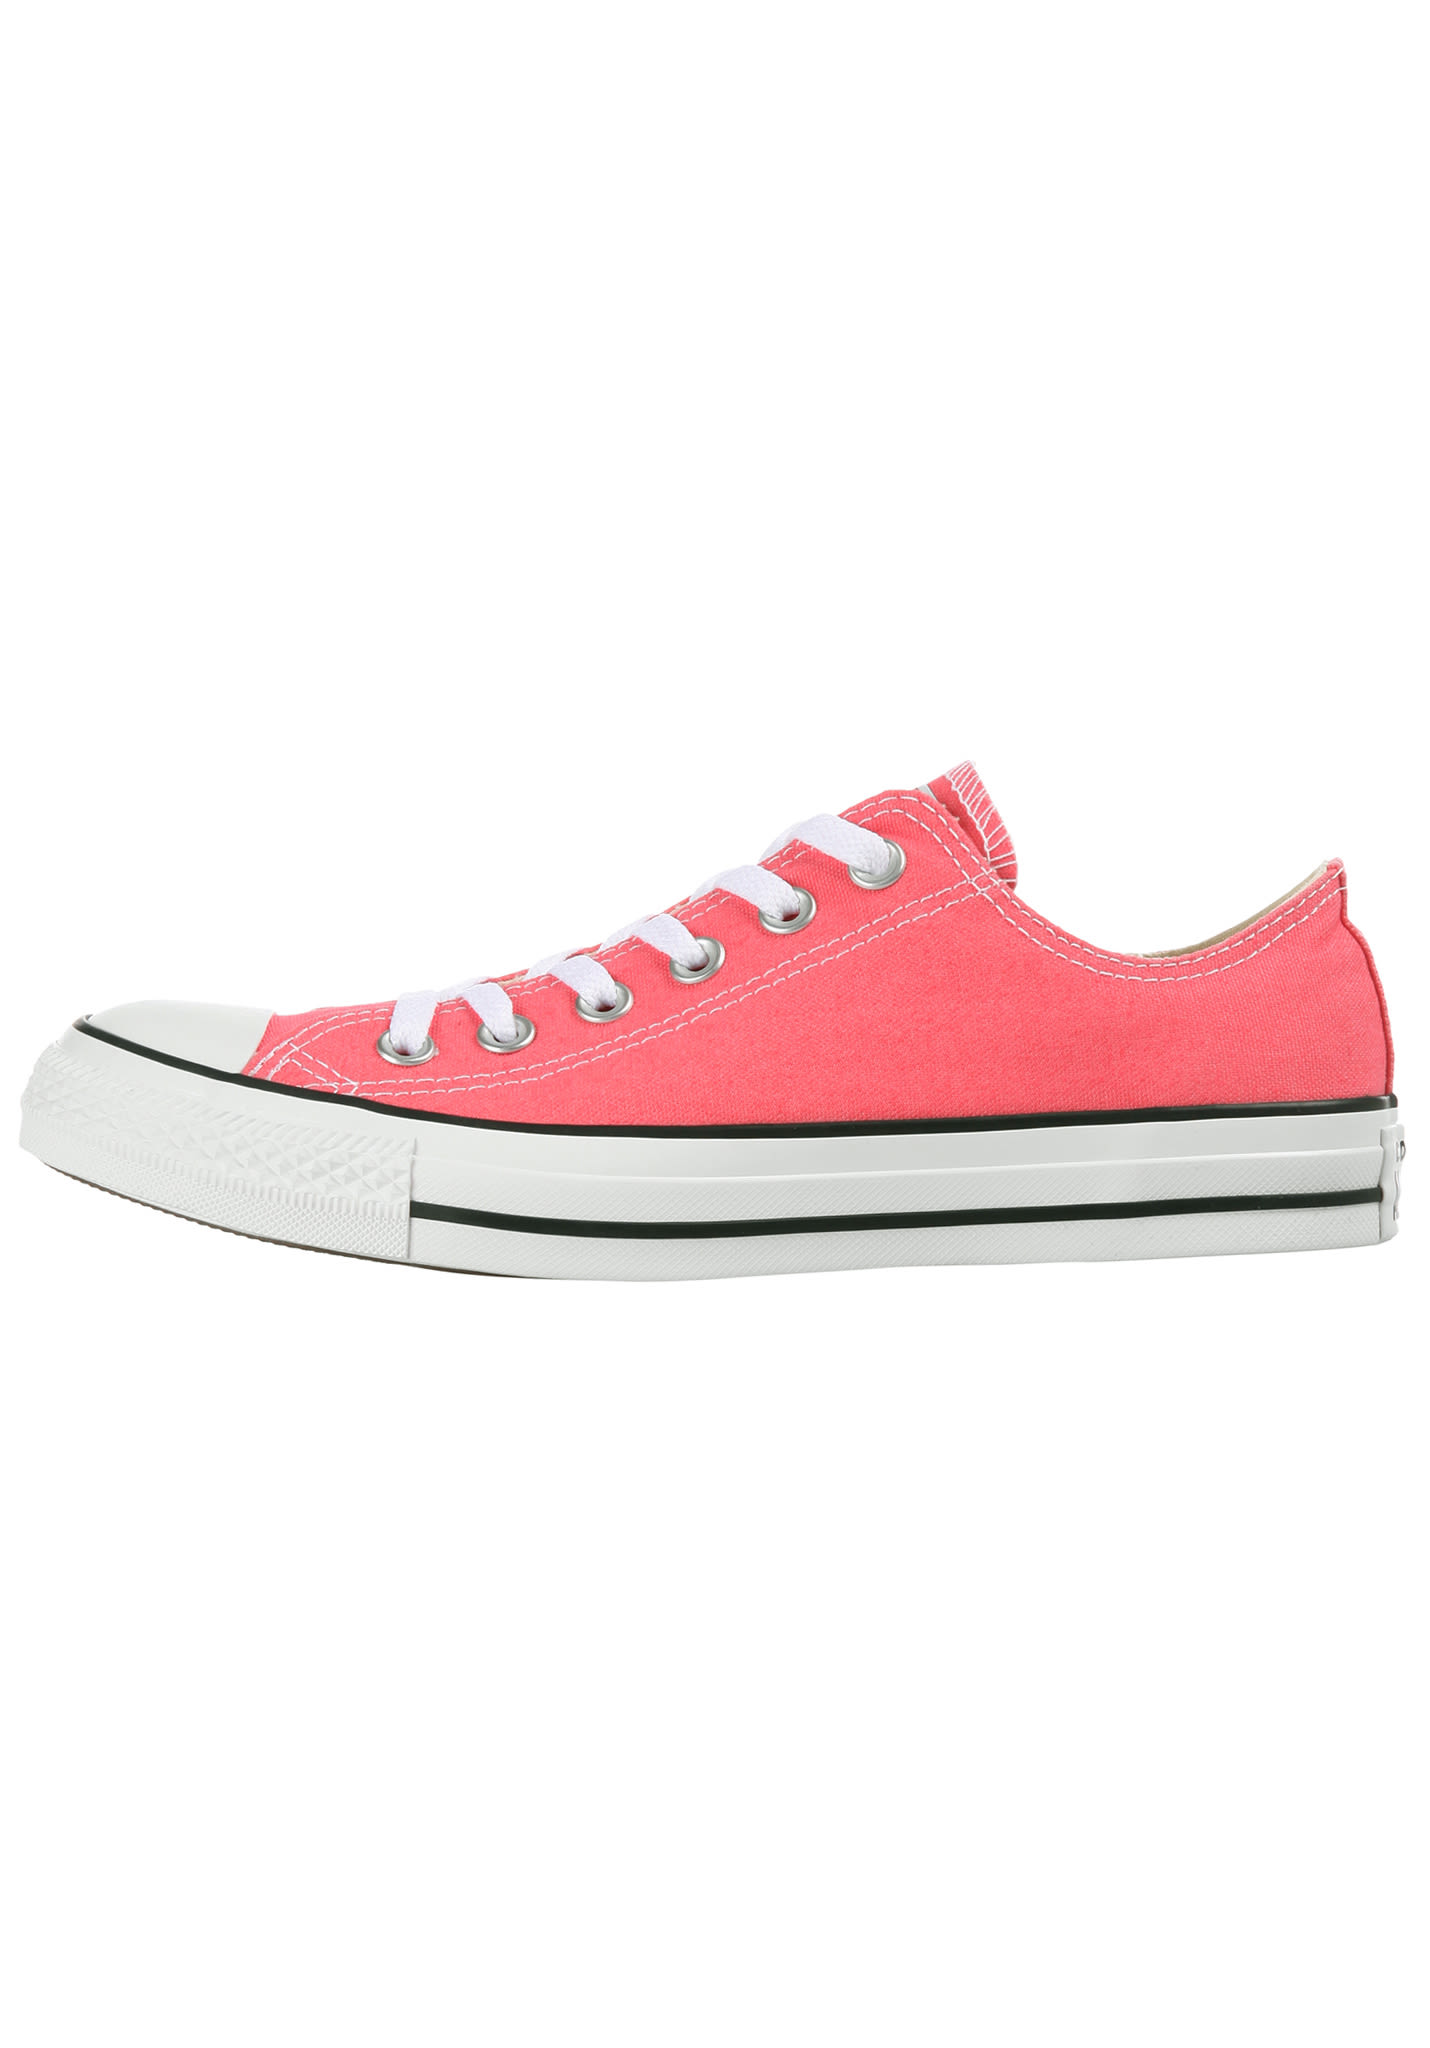 18f0664a7e8 Converse Chuck Taylor All Star Low Punch - Sneakers for Women - Pink -  Planet Sports